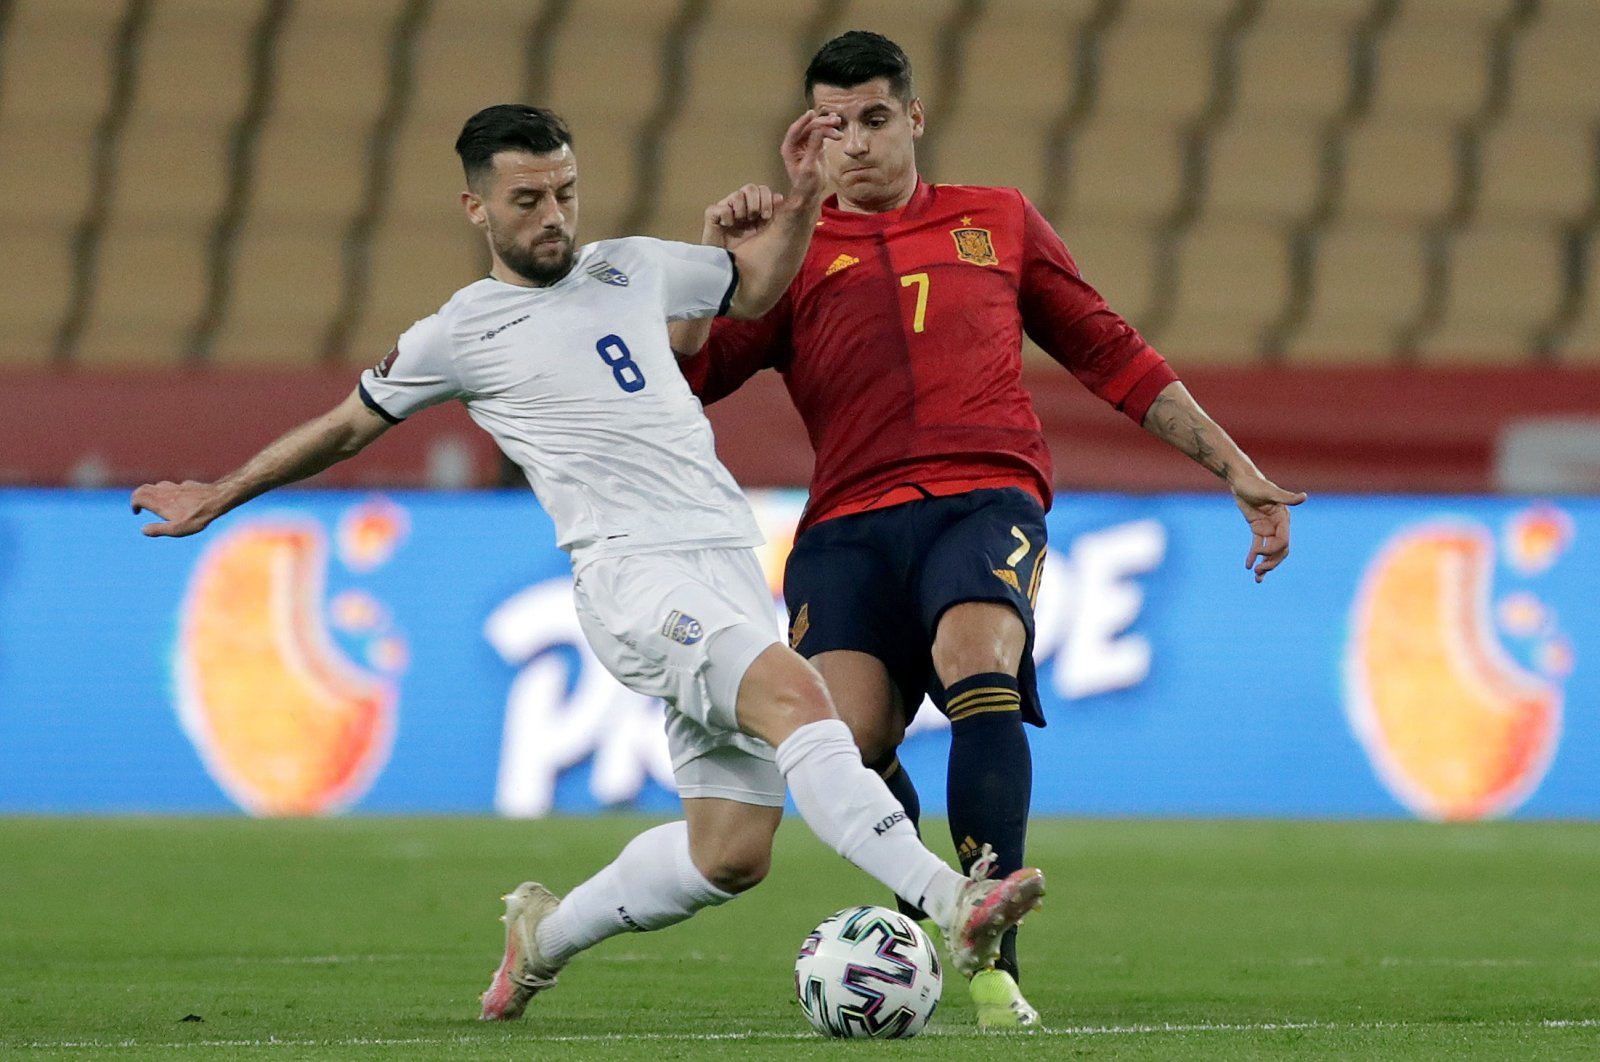 Spain's striker Alvaro Morata (R) duels for the ball against Kosovo's midfielder Besar Halimi (L) during their FIFA World Cup 2022 Qualifying round, Group B match at La Cartuja stadium, in Seville, Andalusia, Spain, March 31, 2021. (EPA Photo)